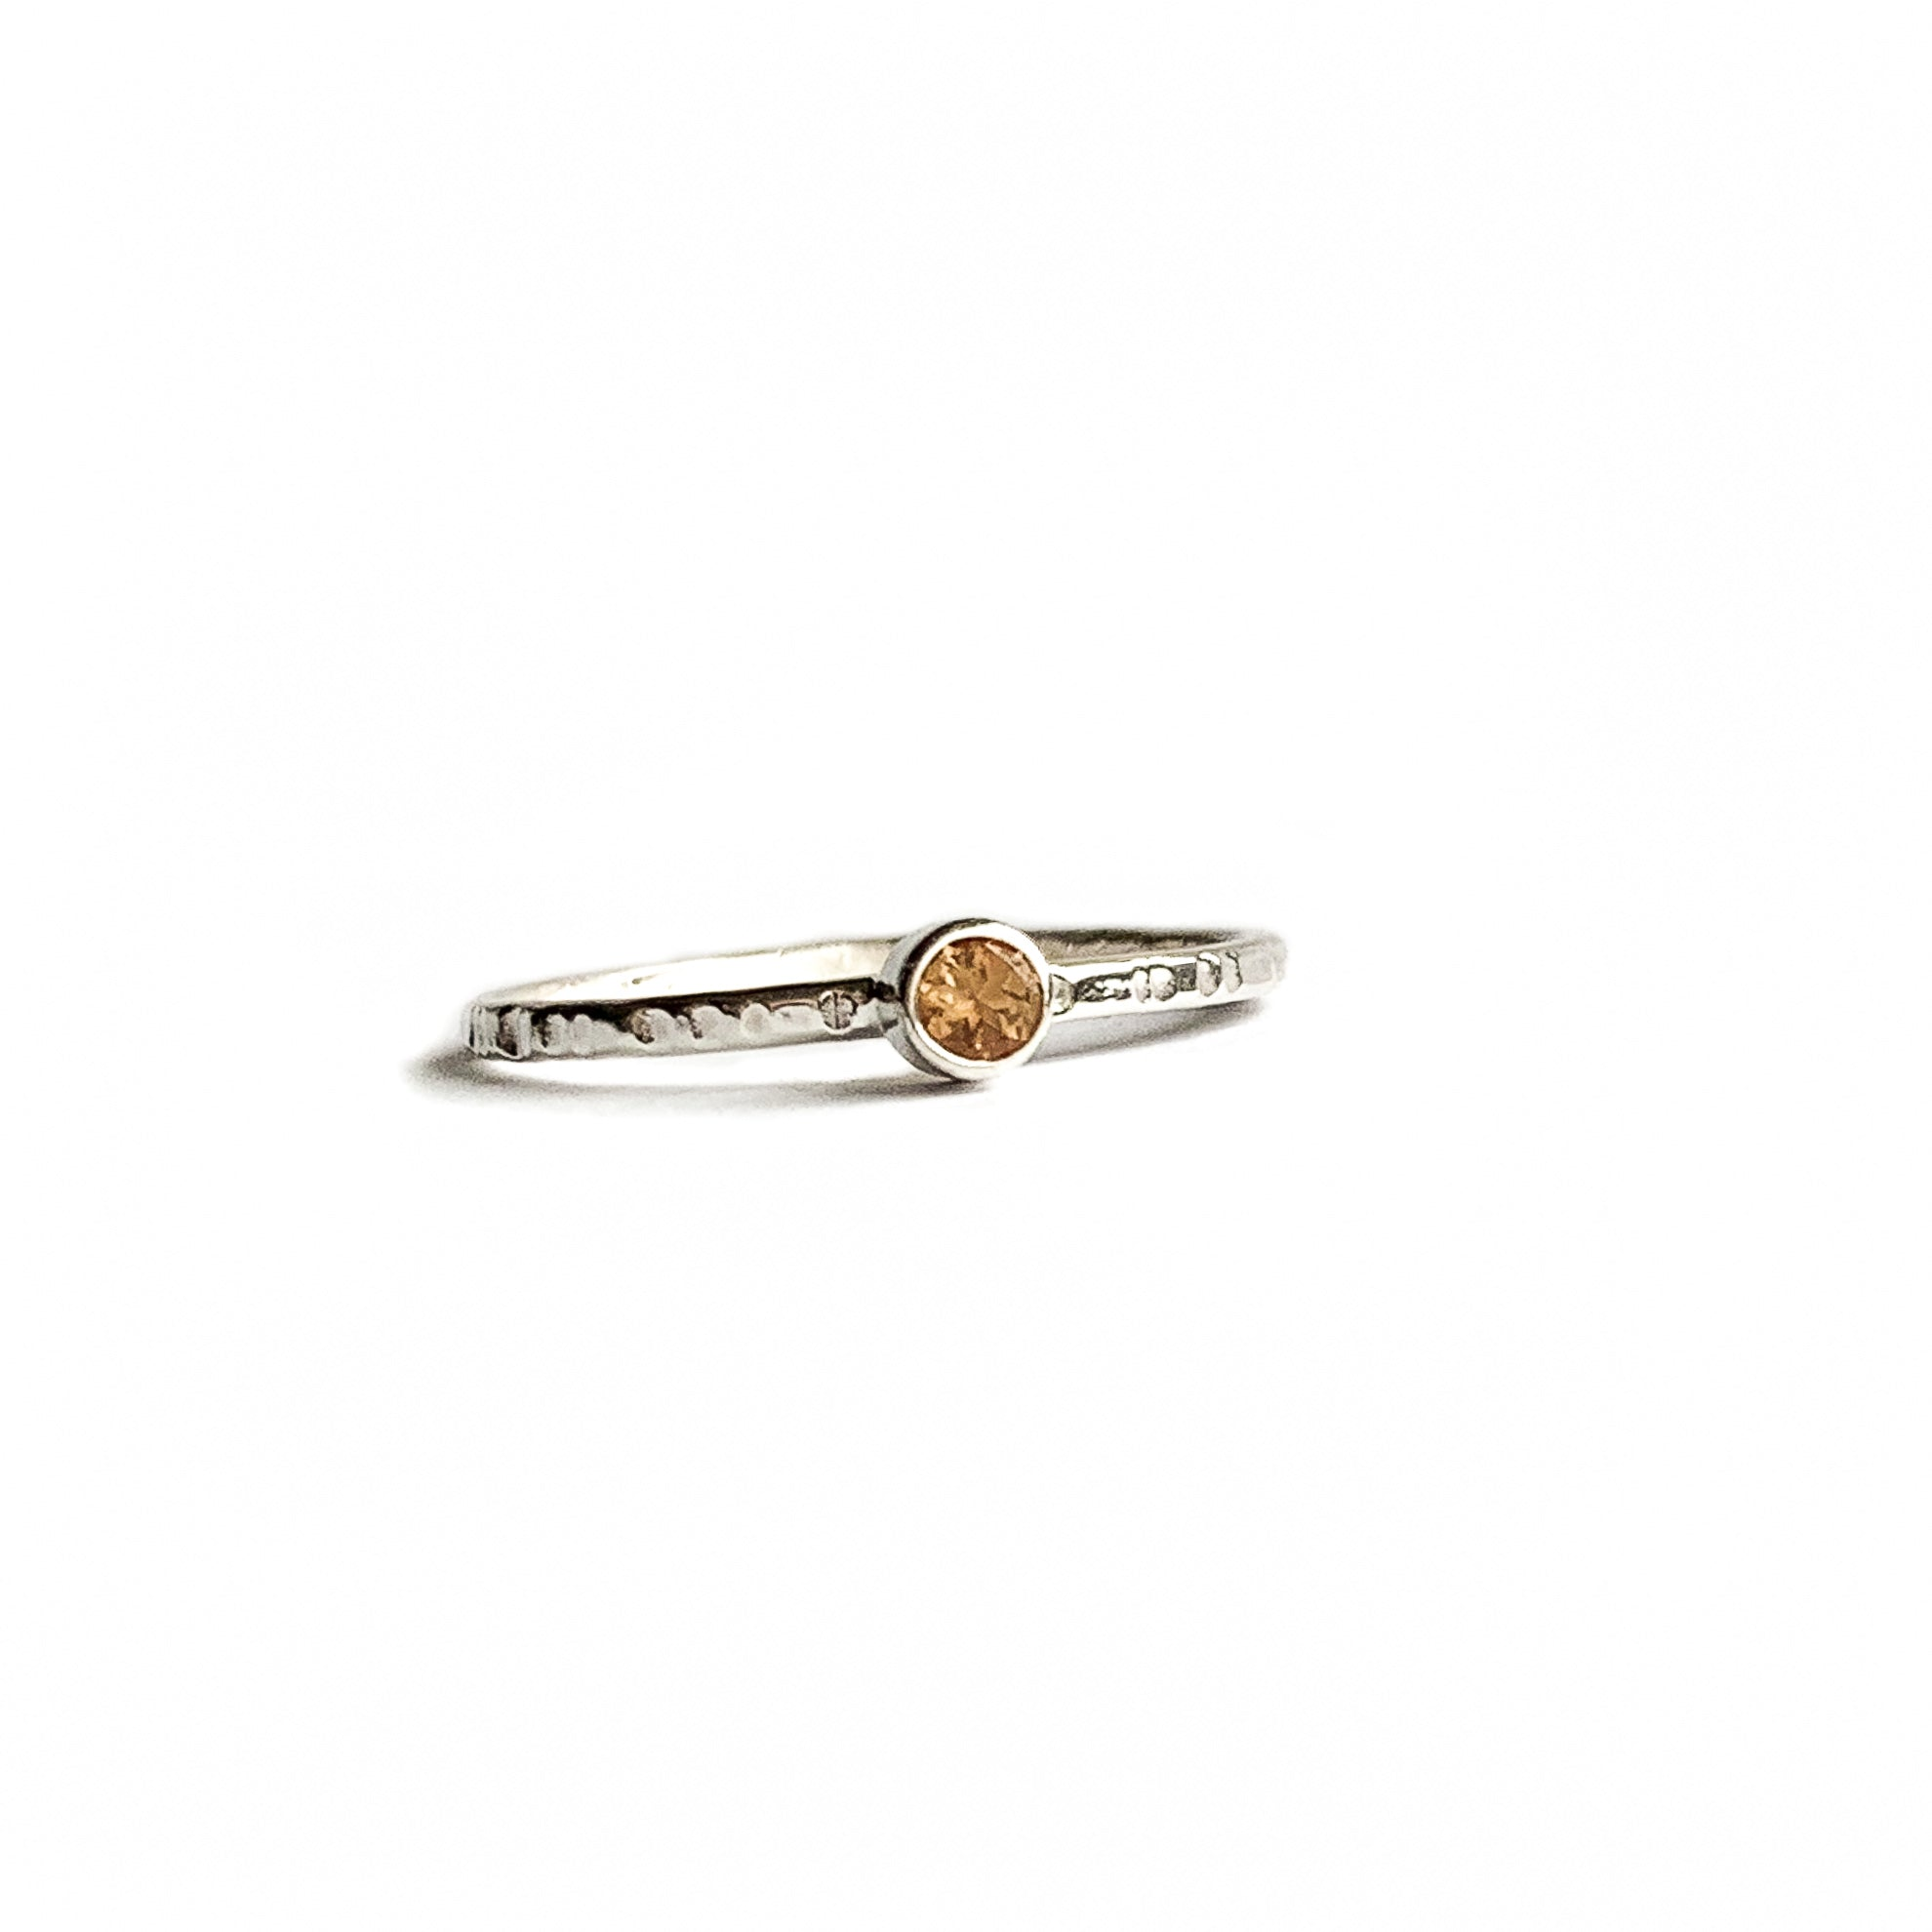 CITRINE ring - Silver